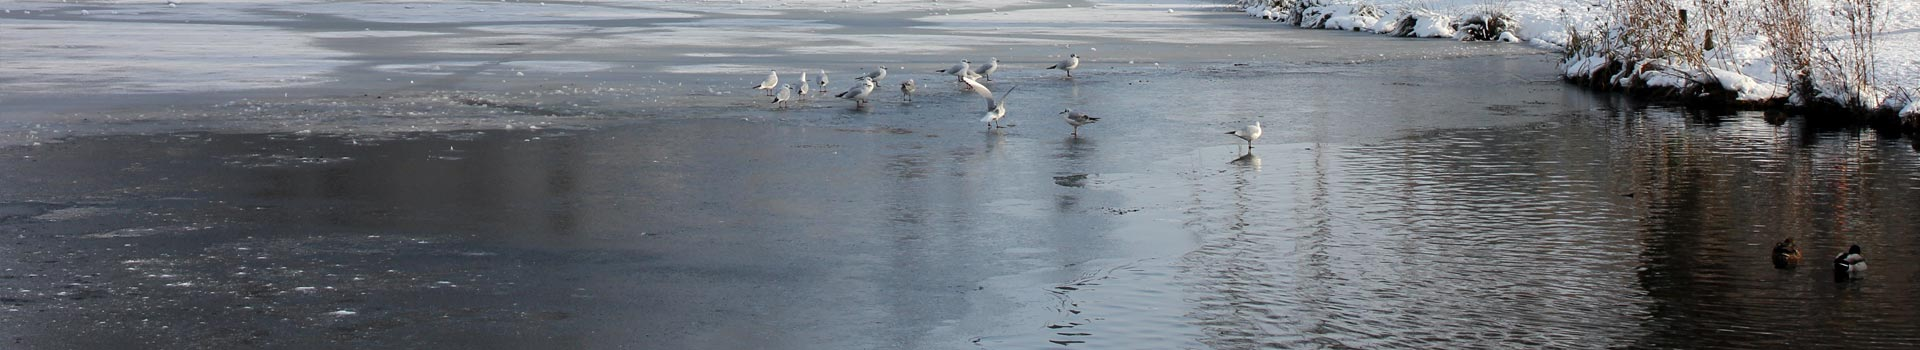 Seagulls on an icy Beacon Pool